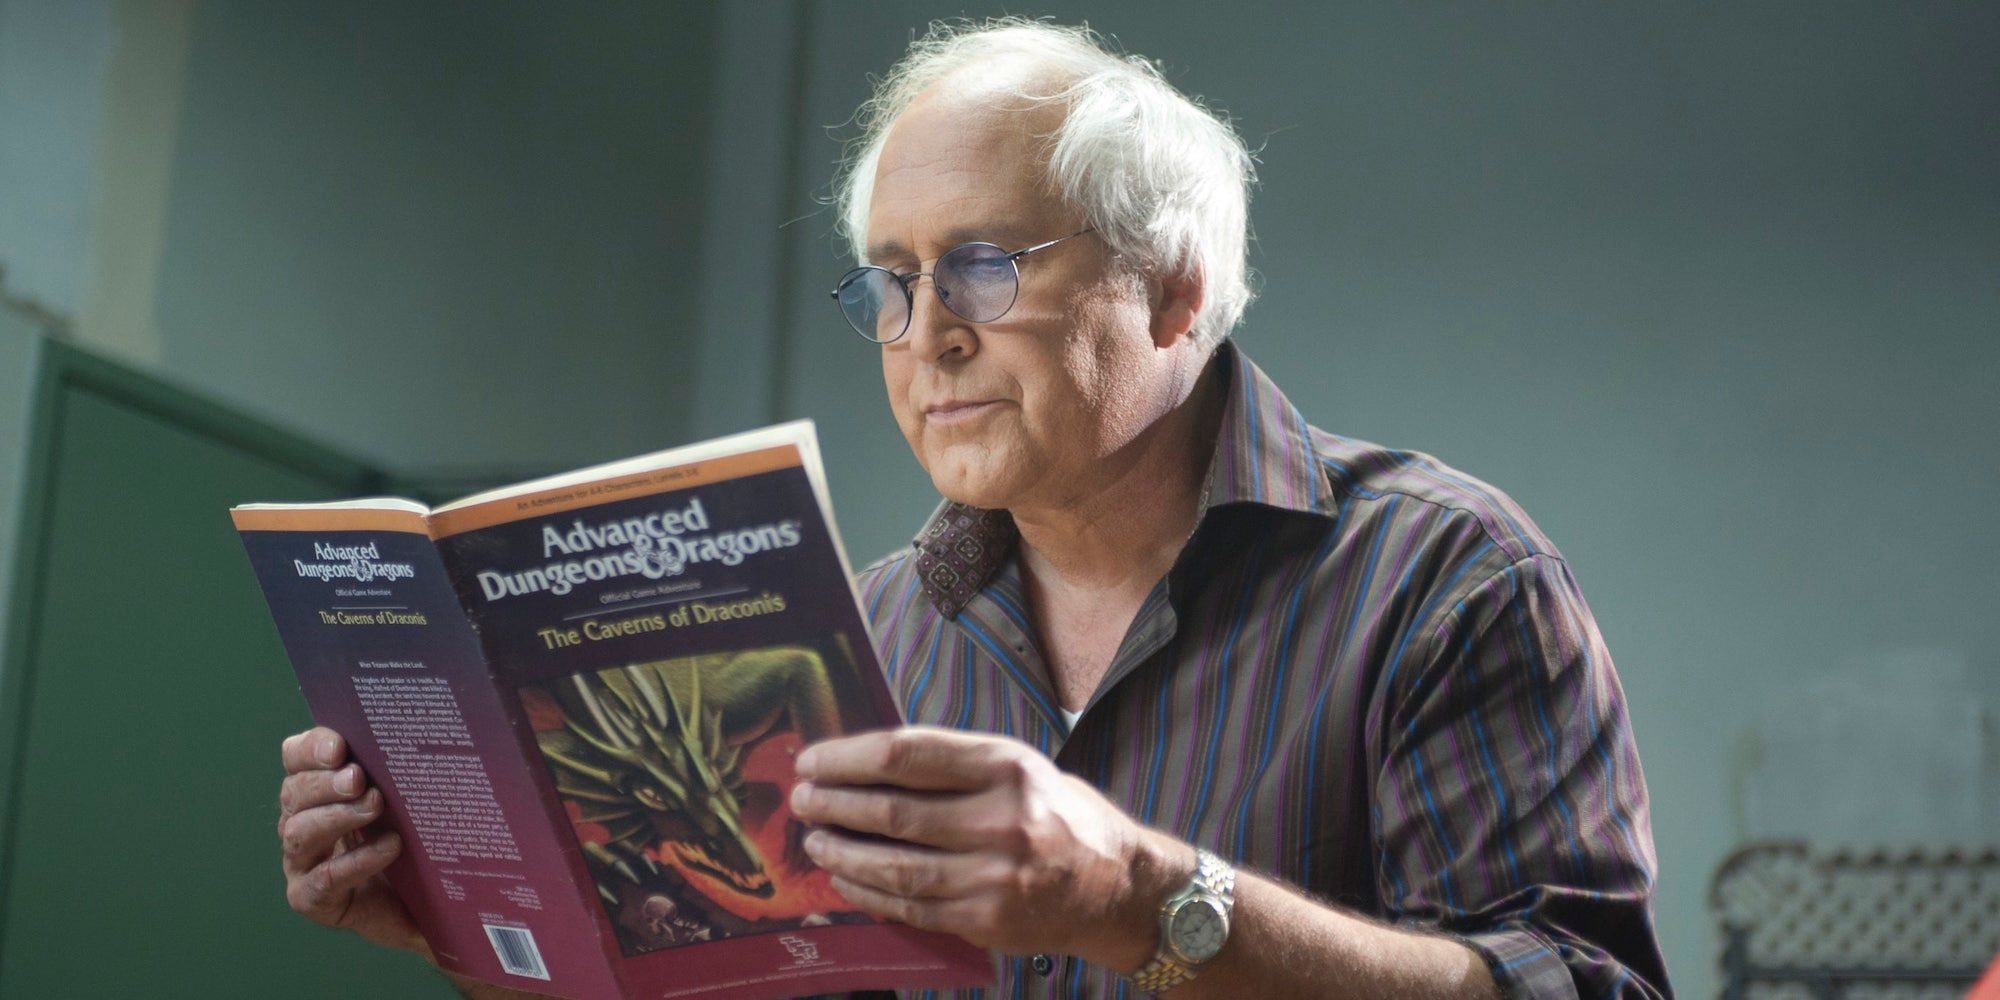 Community: 'Advanced Dungeons & Dragons' Shouldn't Have Been Pulled From Streaming